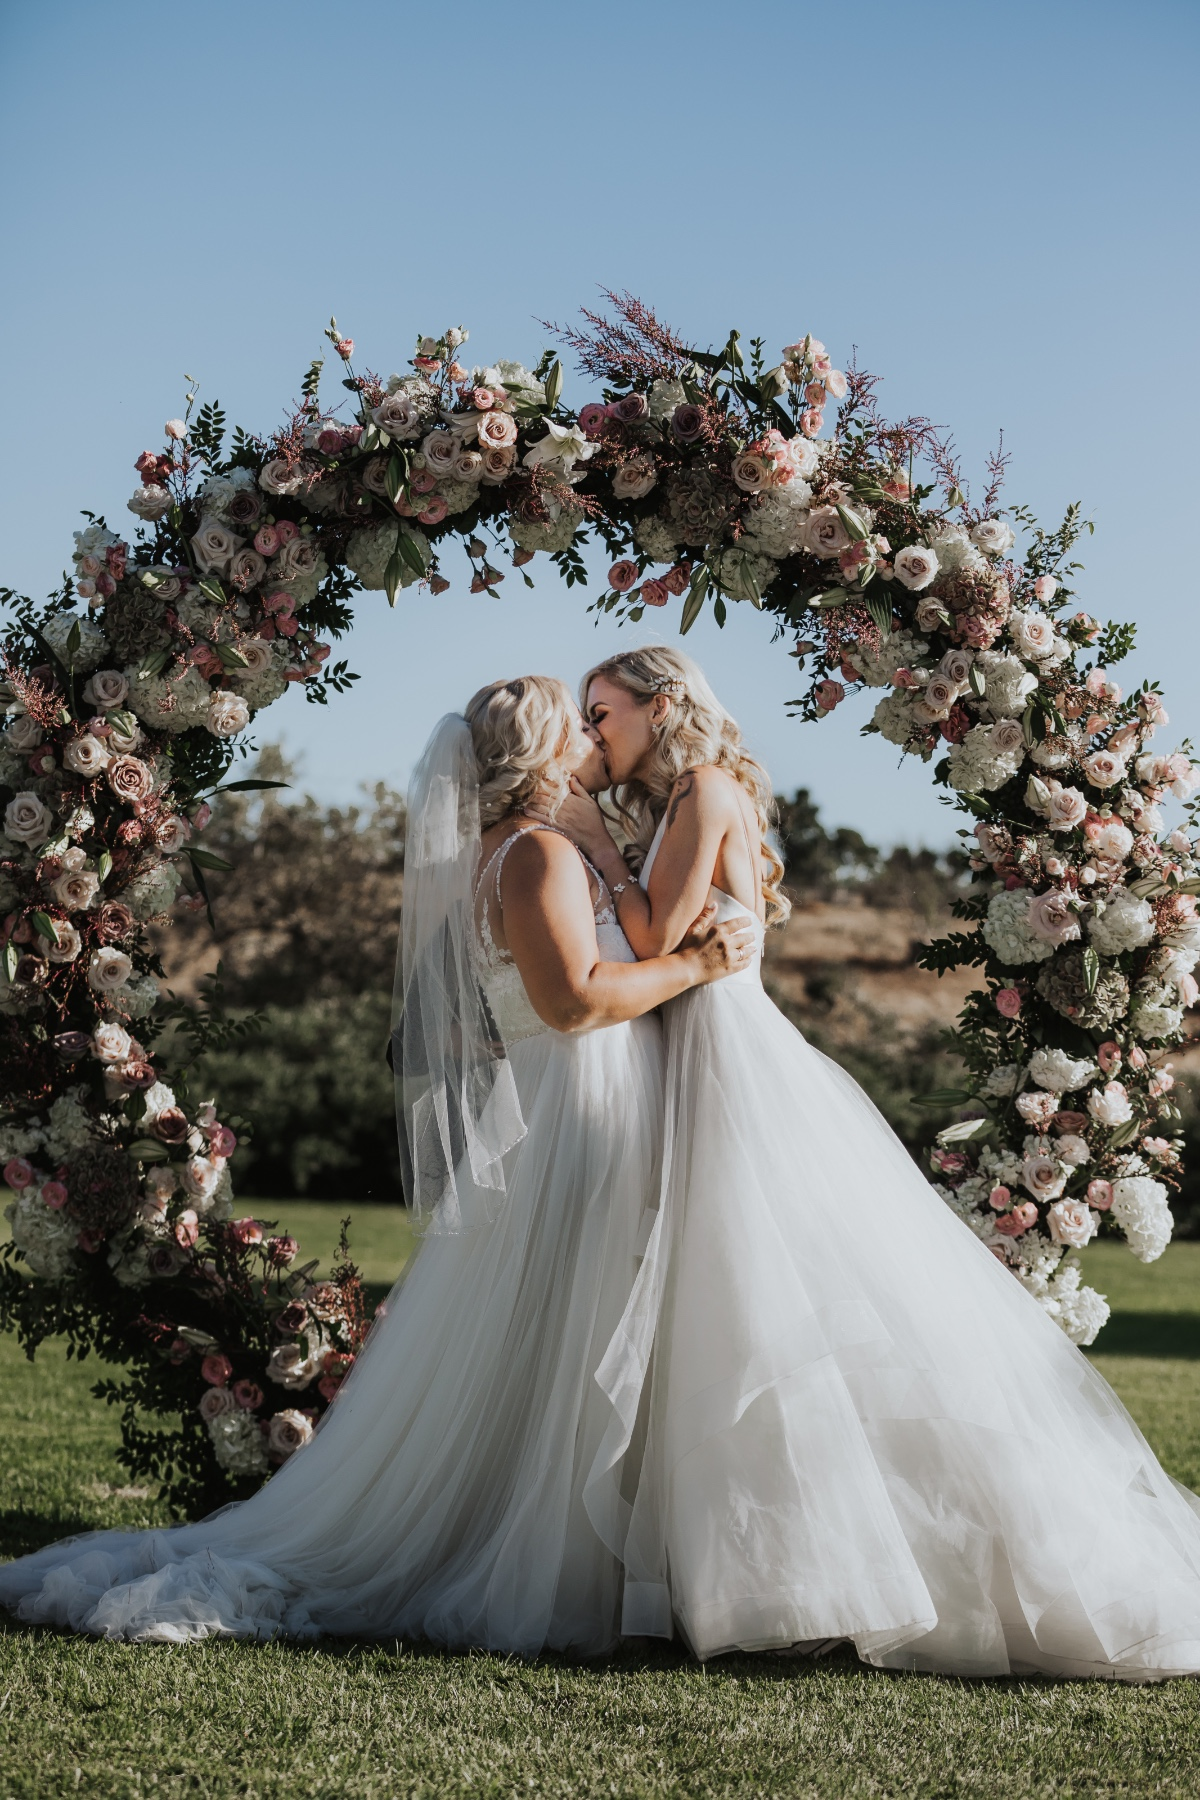 Just married wedding kiss behind floral centerpiece